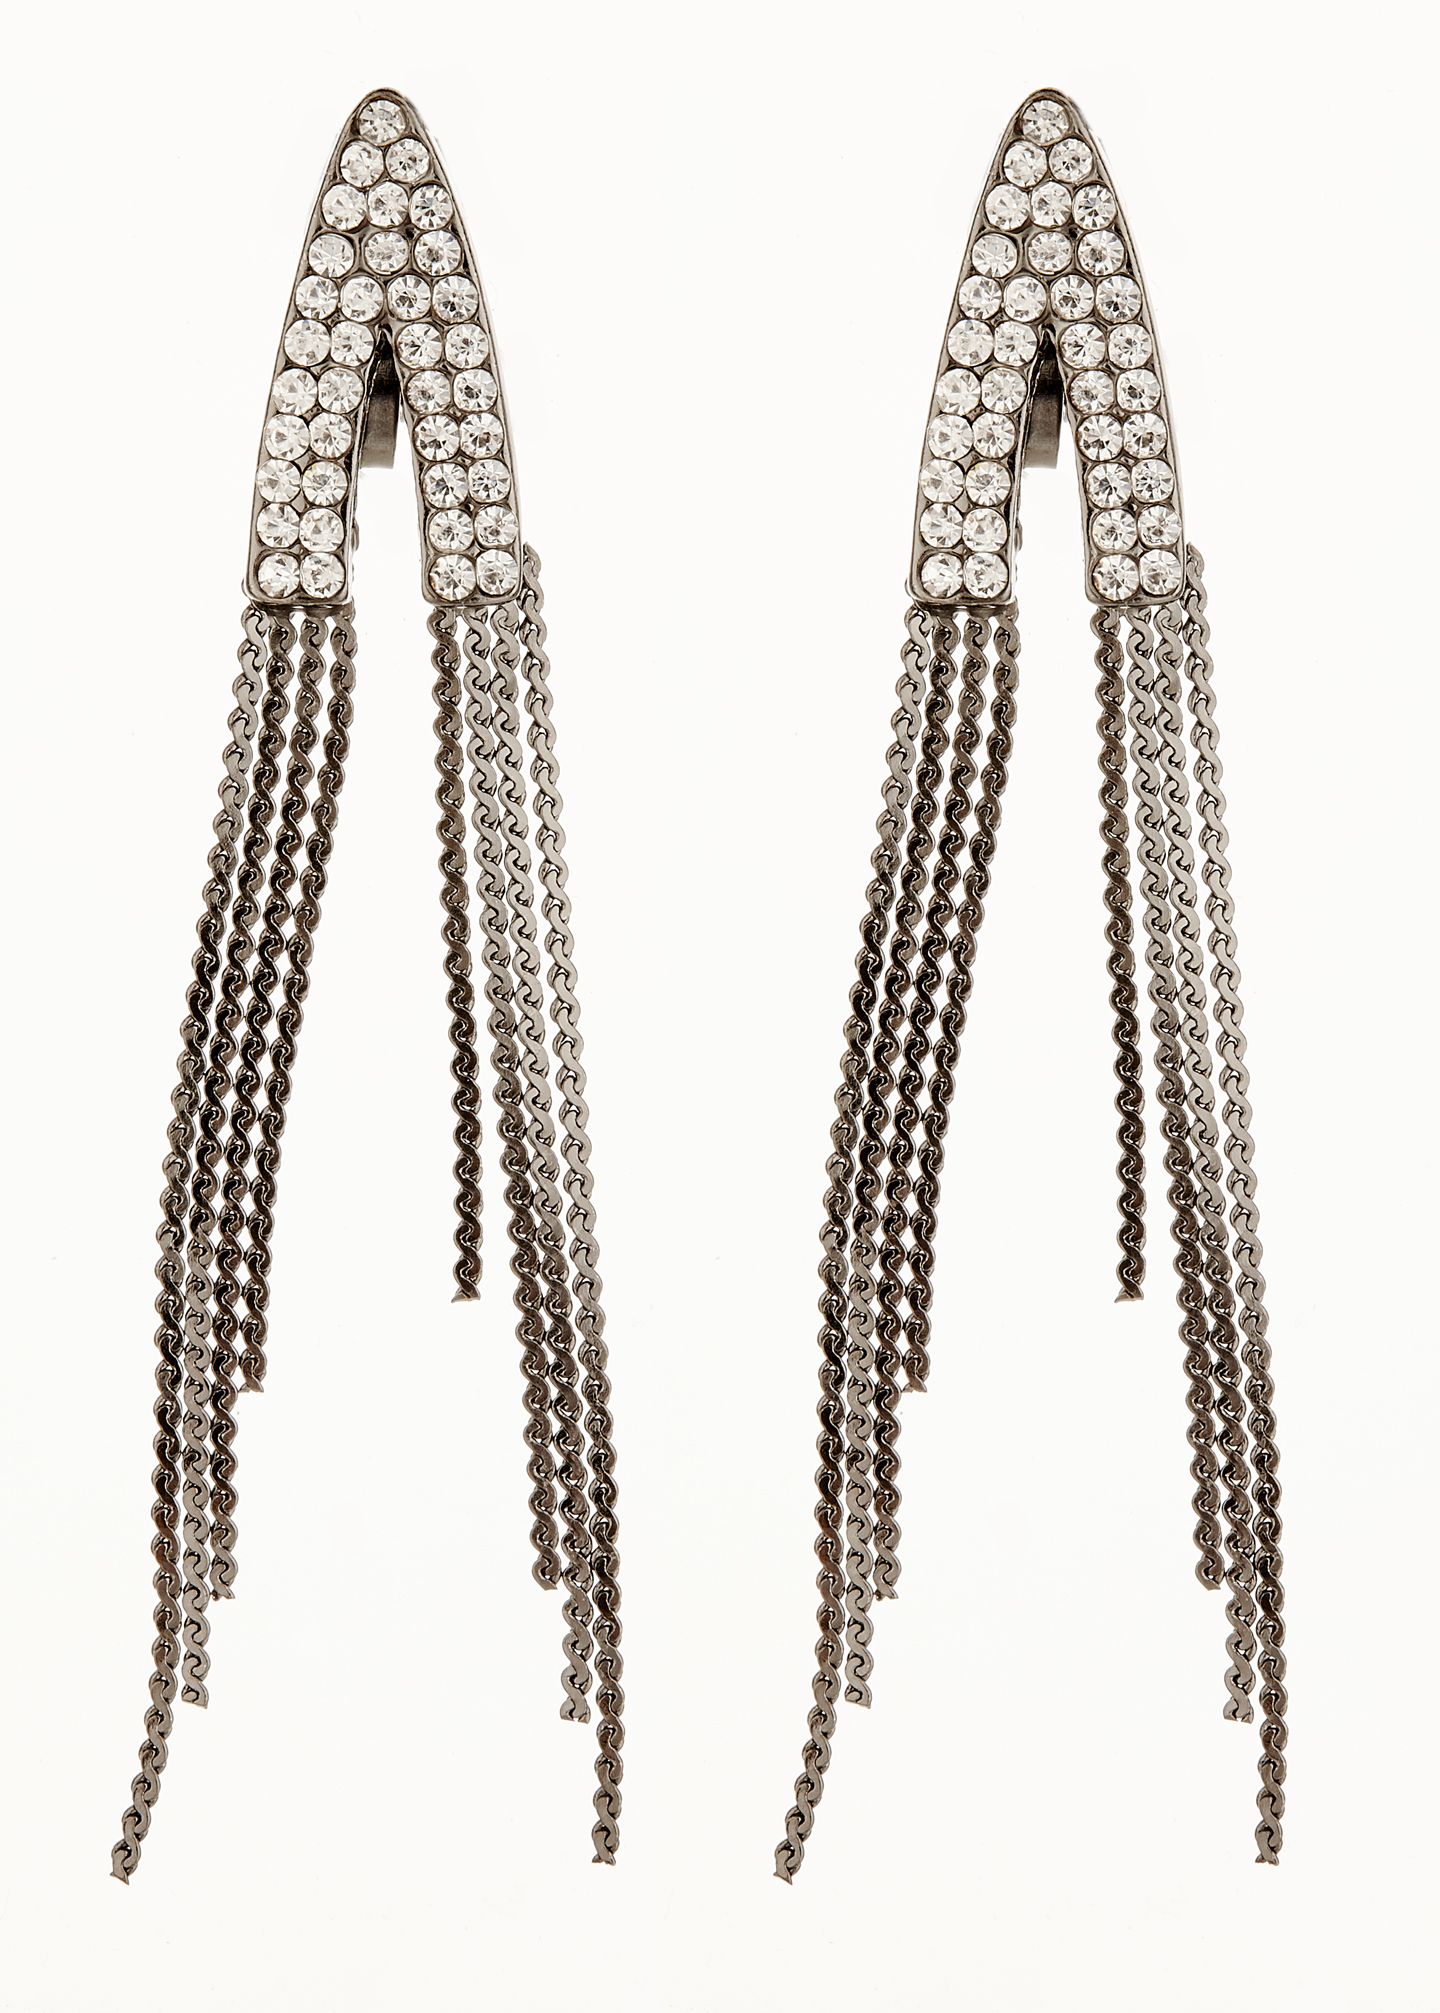 Clip On Earrings - Carla GM - gunmetal grey earring with clear crystals and linked strands